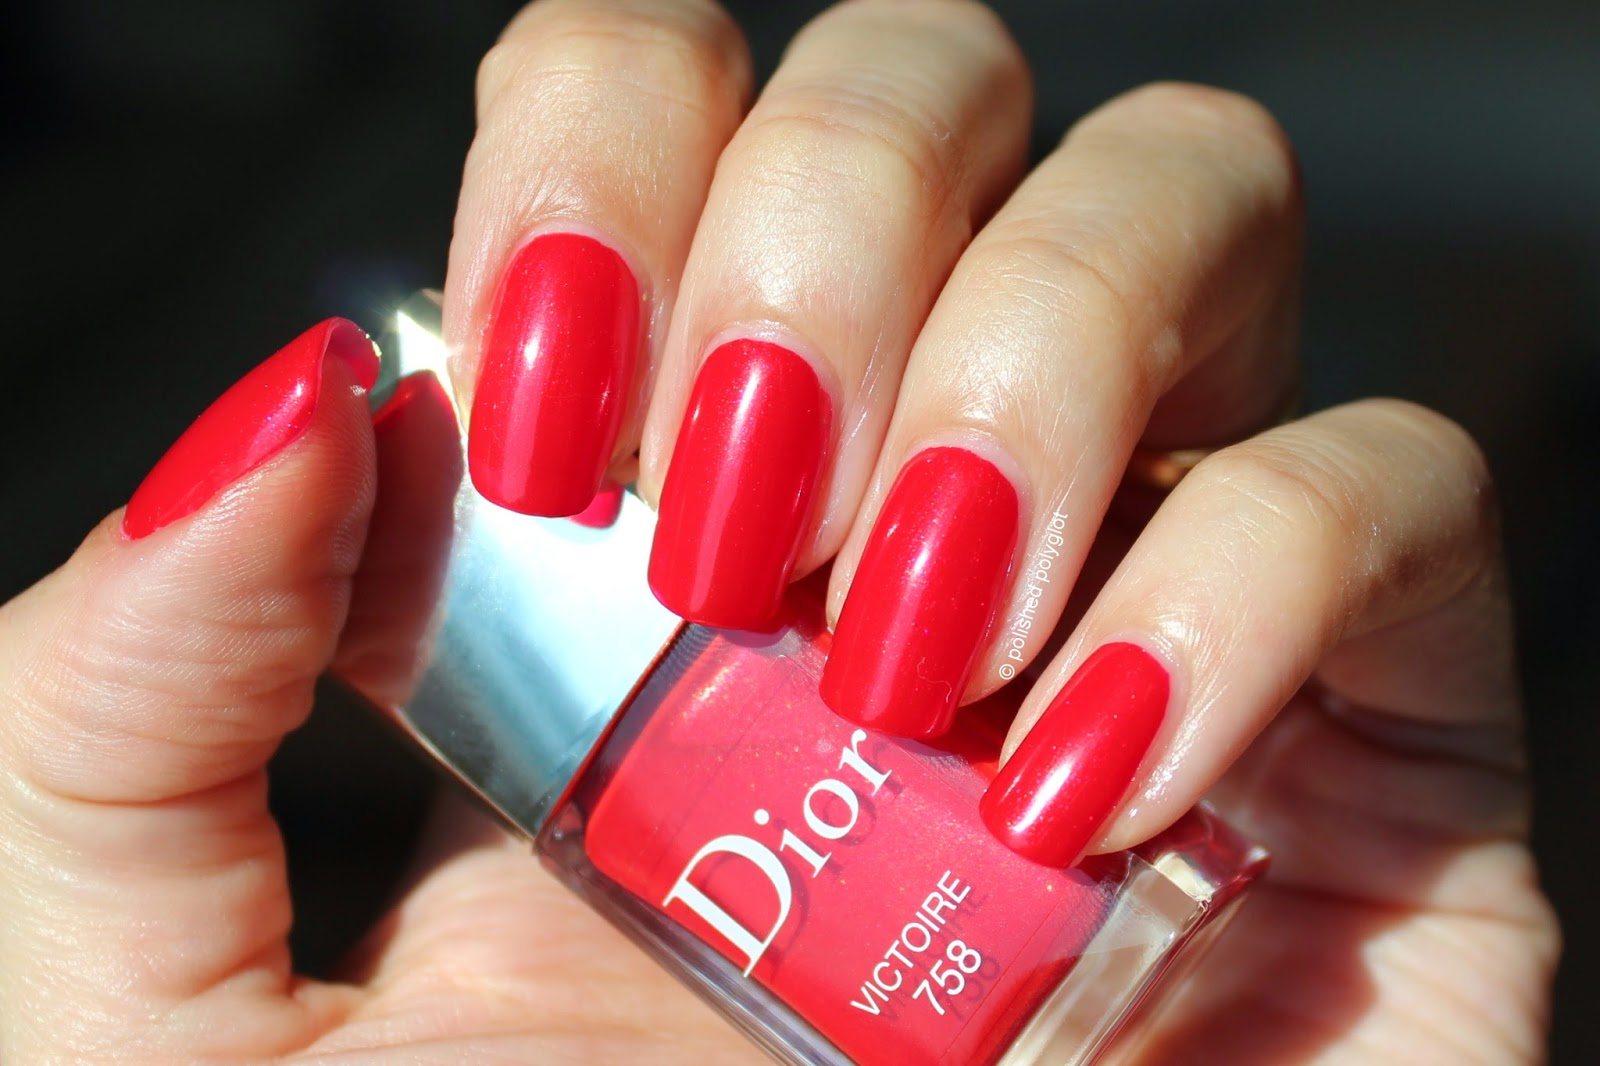 NOTD: Dior 775 Victoire / Polished Polyglot